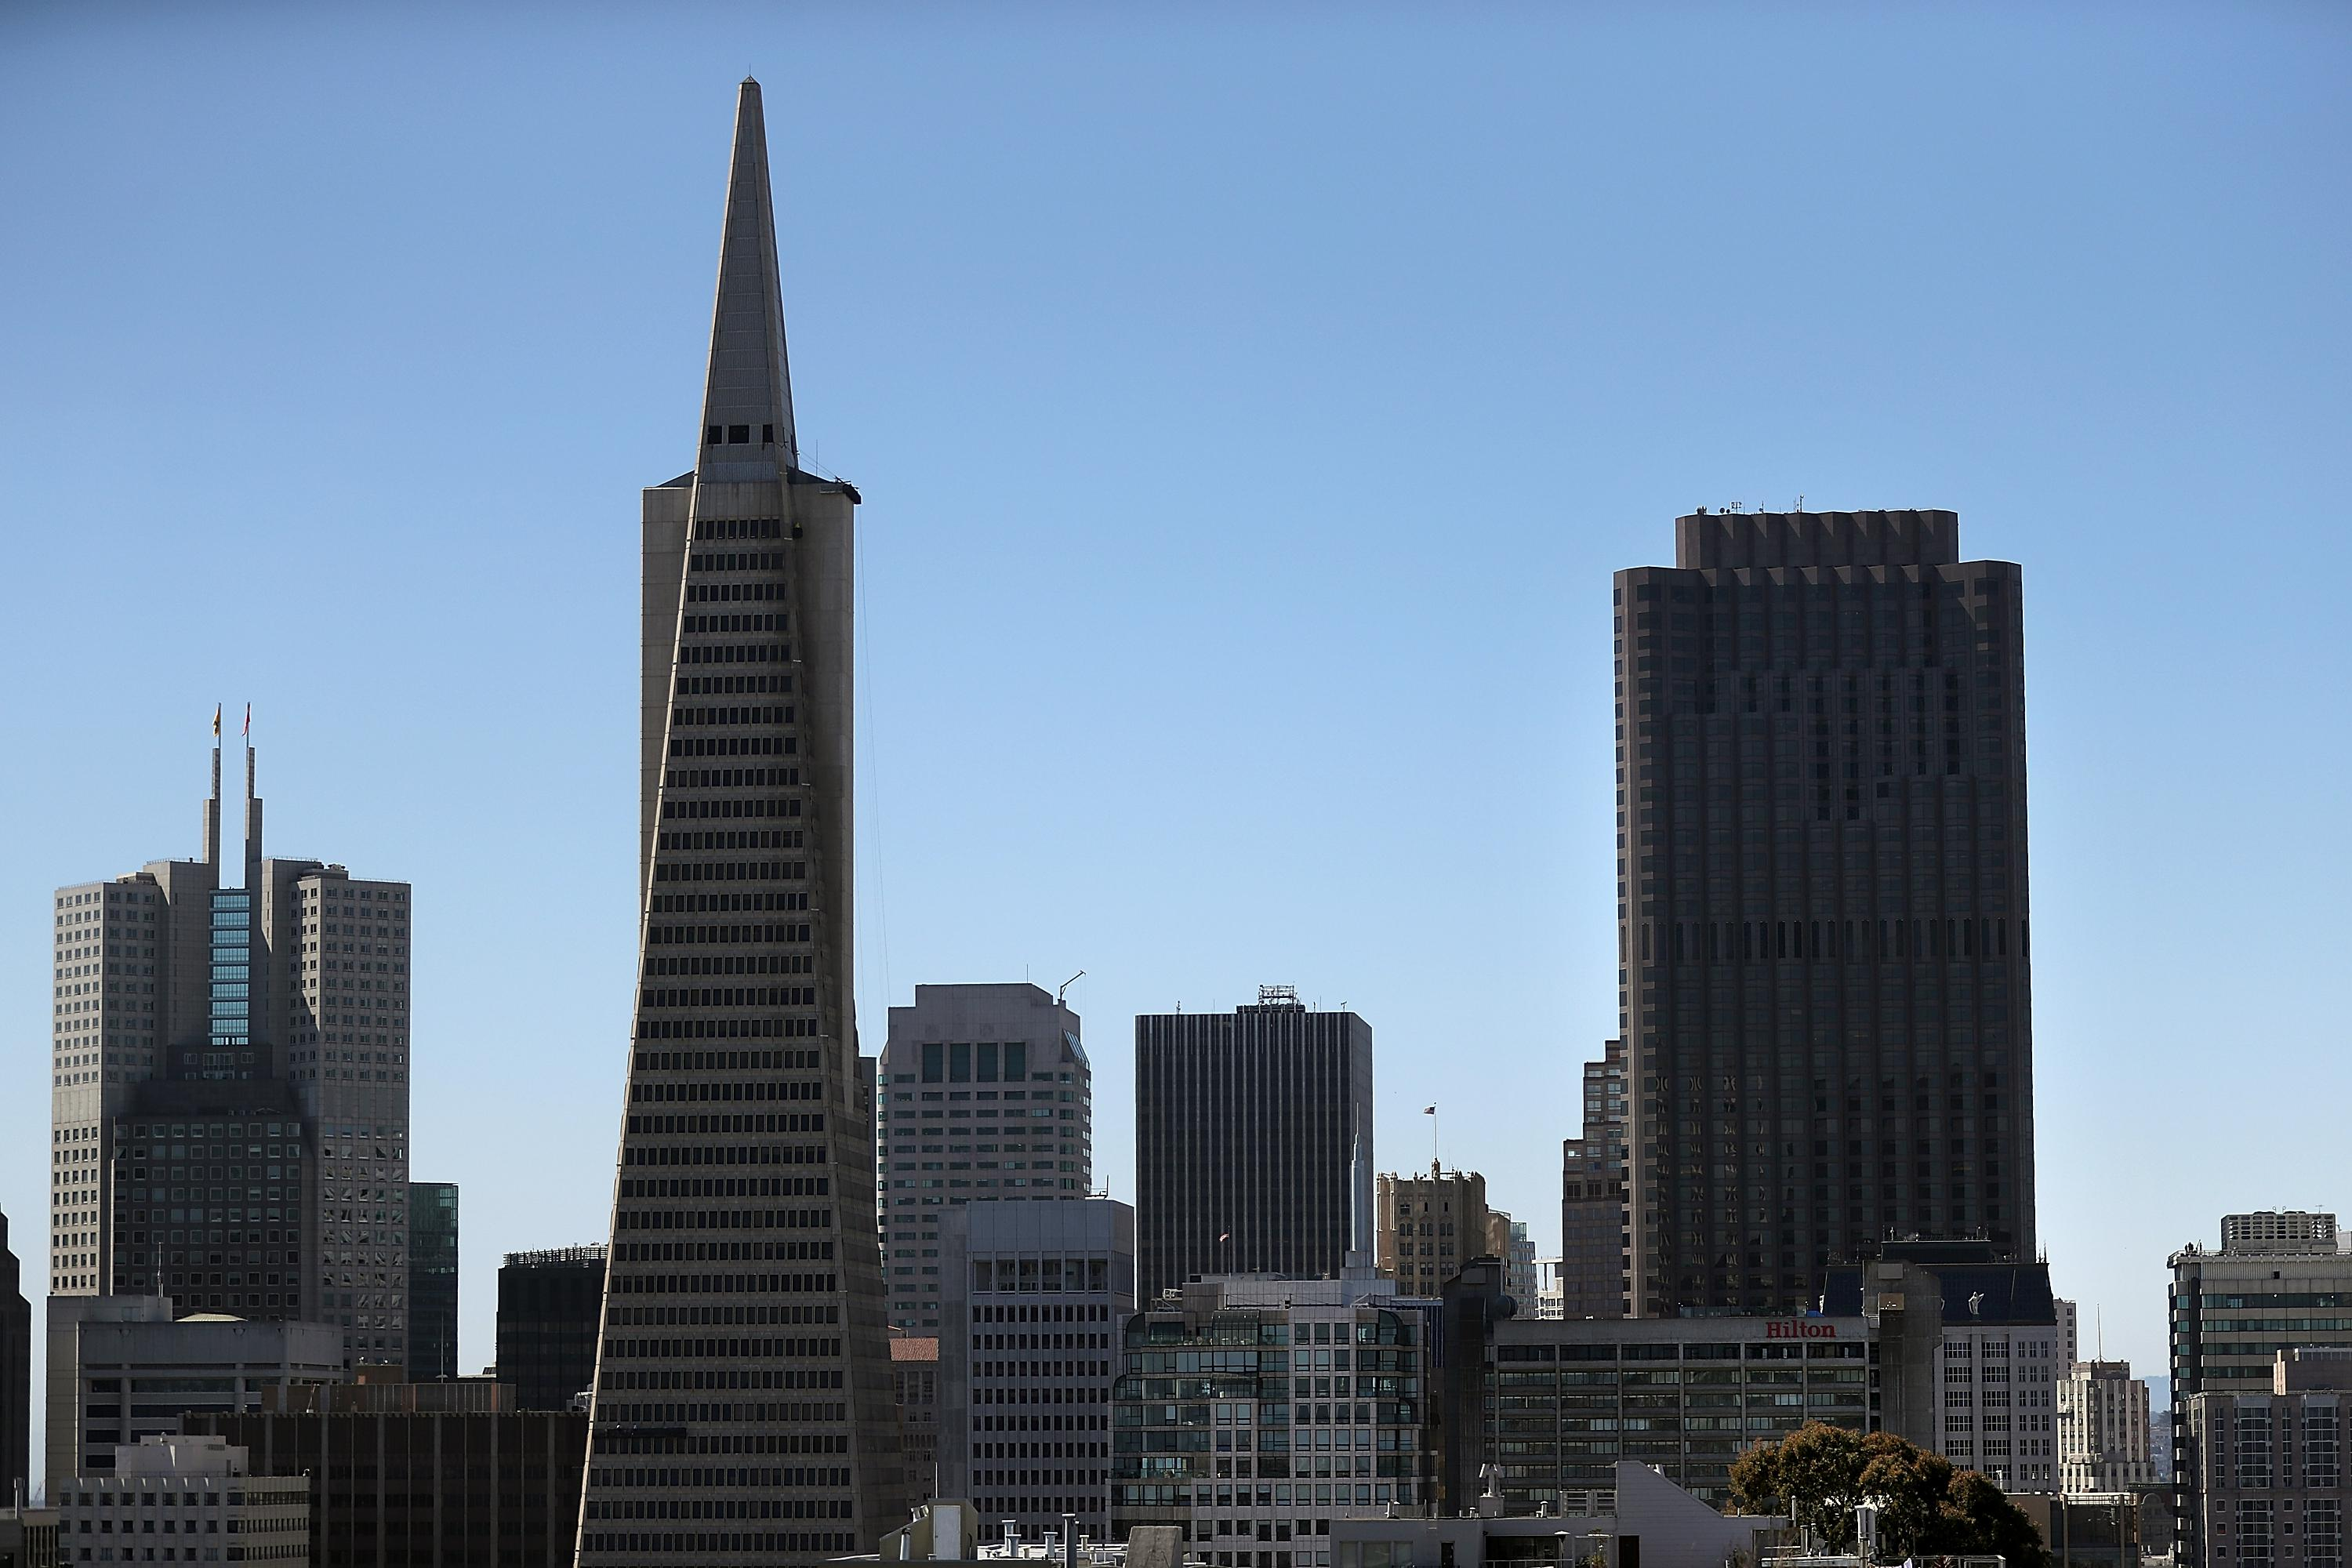 SAN FRANCISCO, CA - JUNE 28:  A view of the Transamerica Pyramid (L) and 555 California (R) on June 28, 2016 in San Francisco, California. A new video that allegedly supports ISIL has emerged on the internet shows San Francisco's iconic Golden Gate Bridge as well as the office building at 555 California.  (Photo by Justin Sullivan/Getty Images)